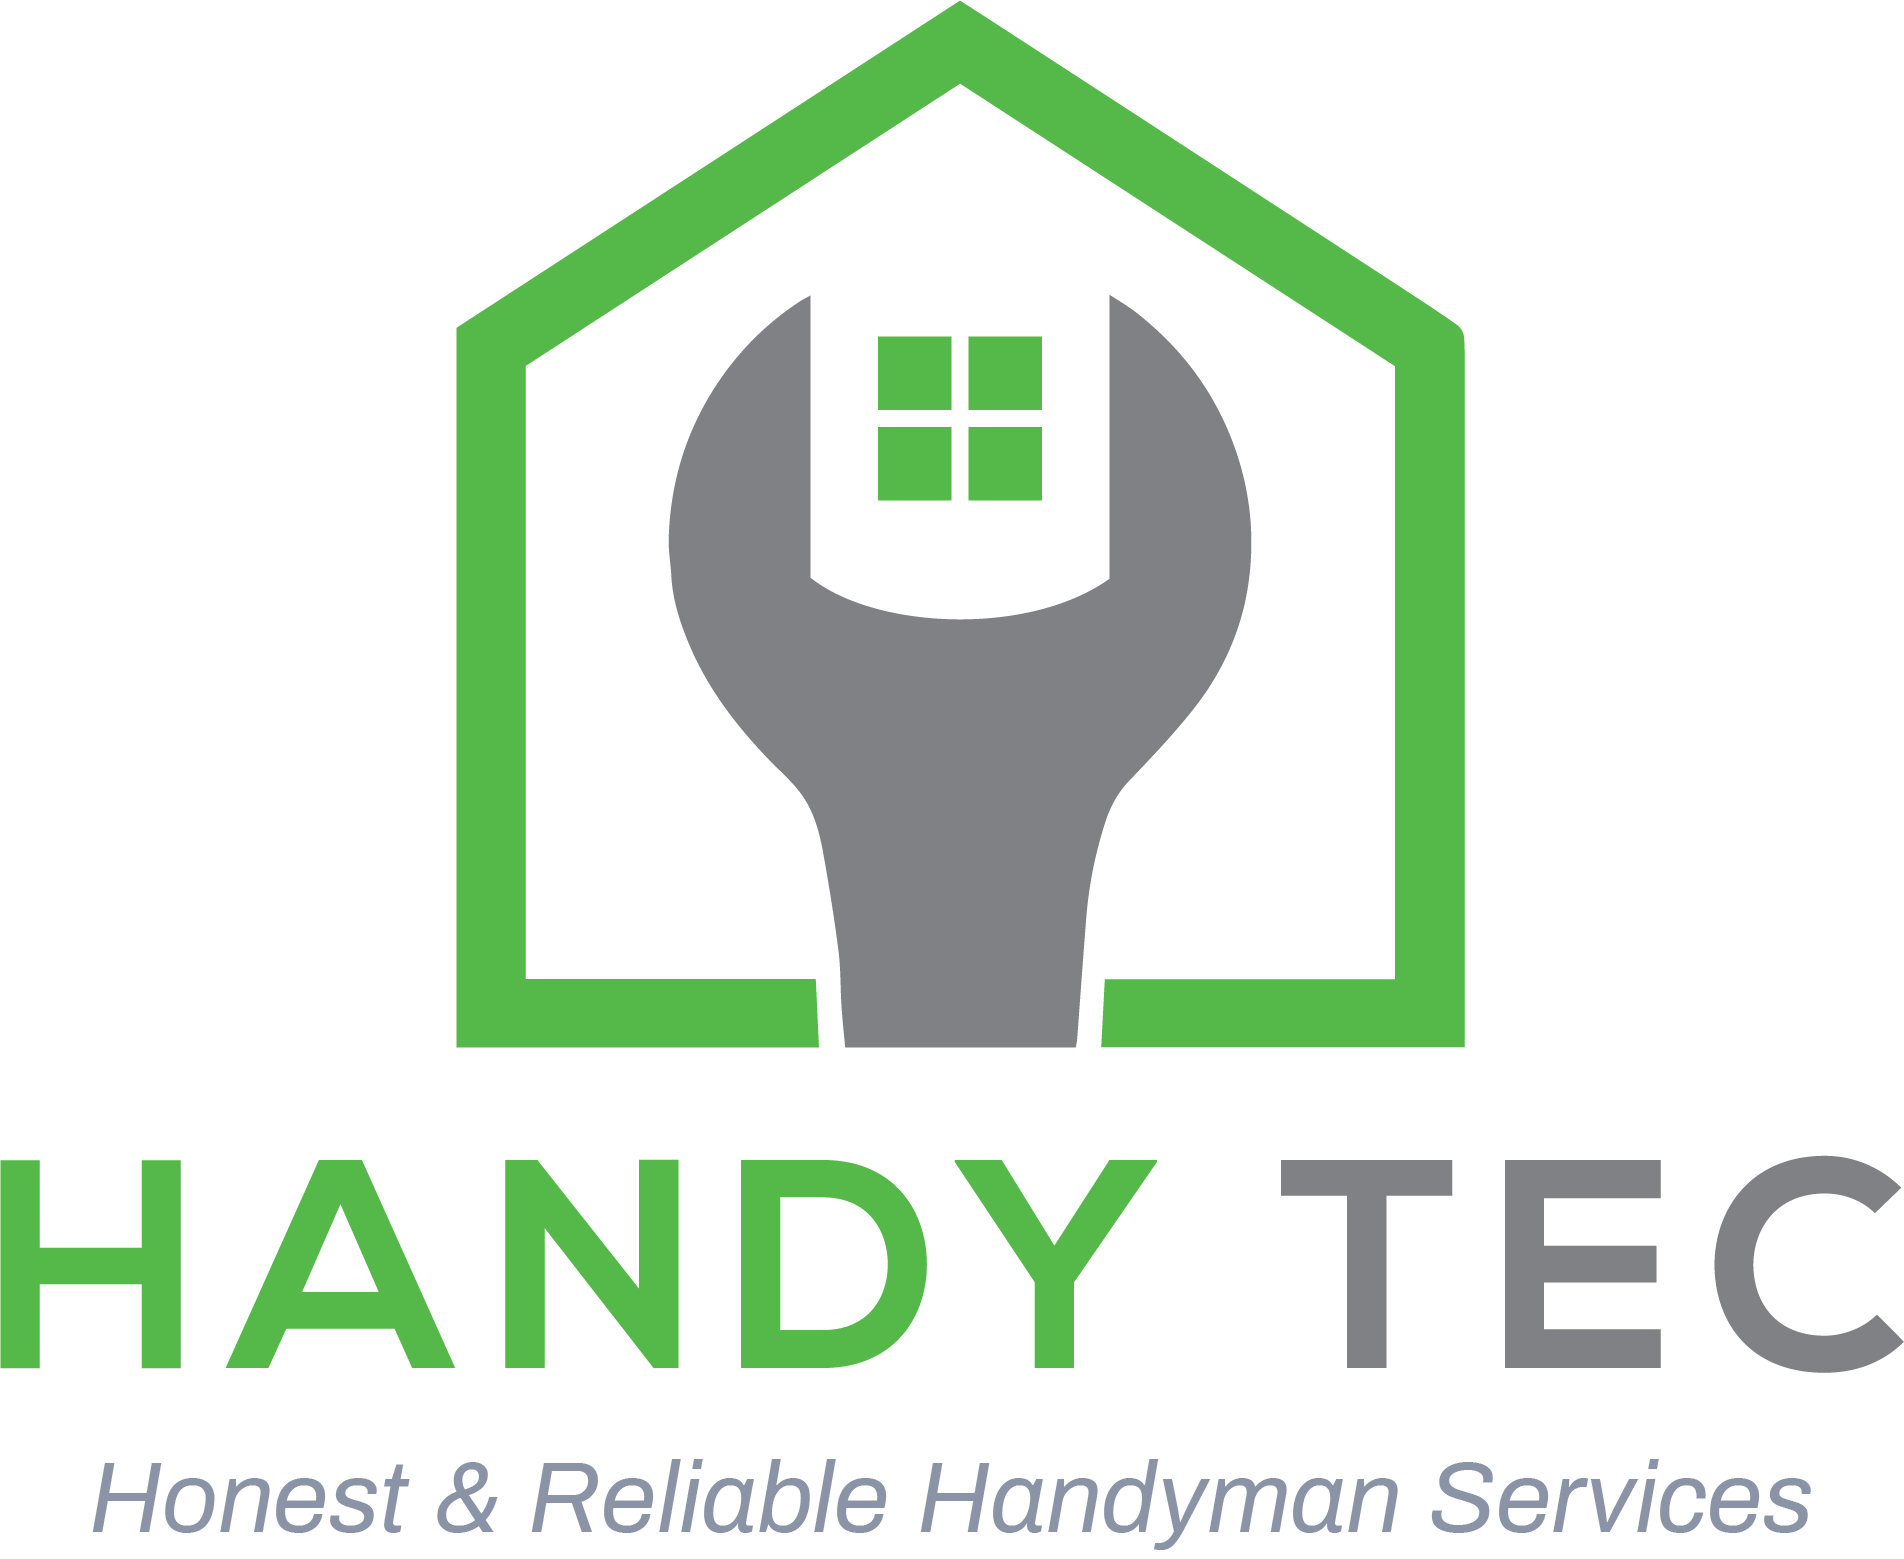 Honest & Reliable Handyman Services in South Jersey